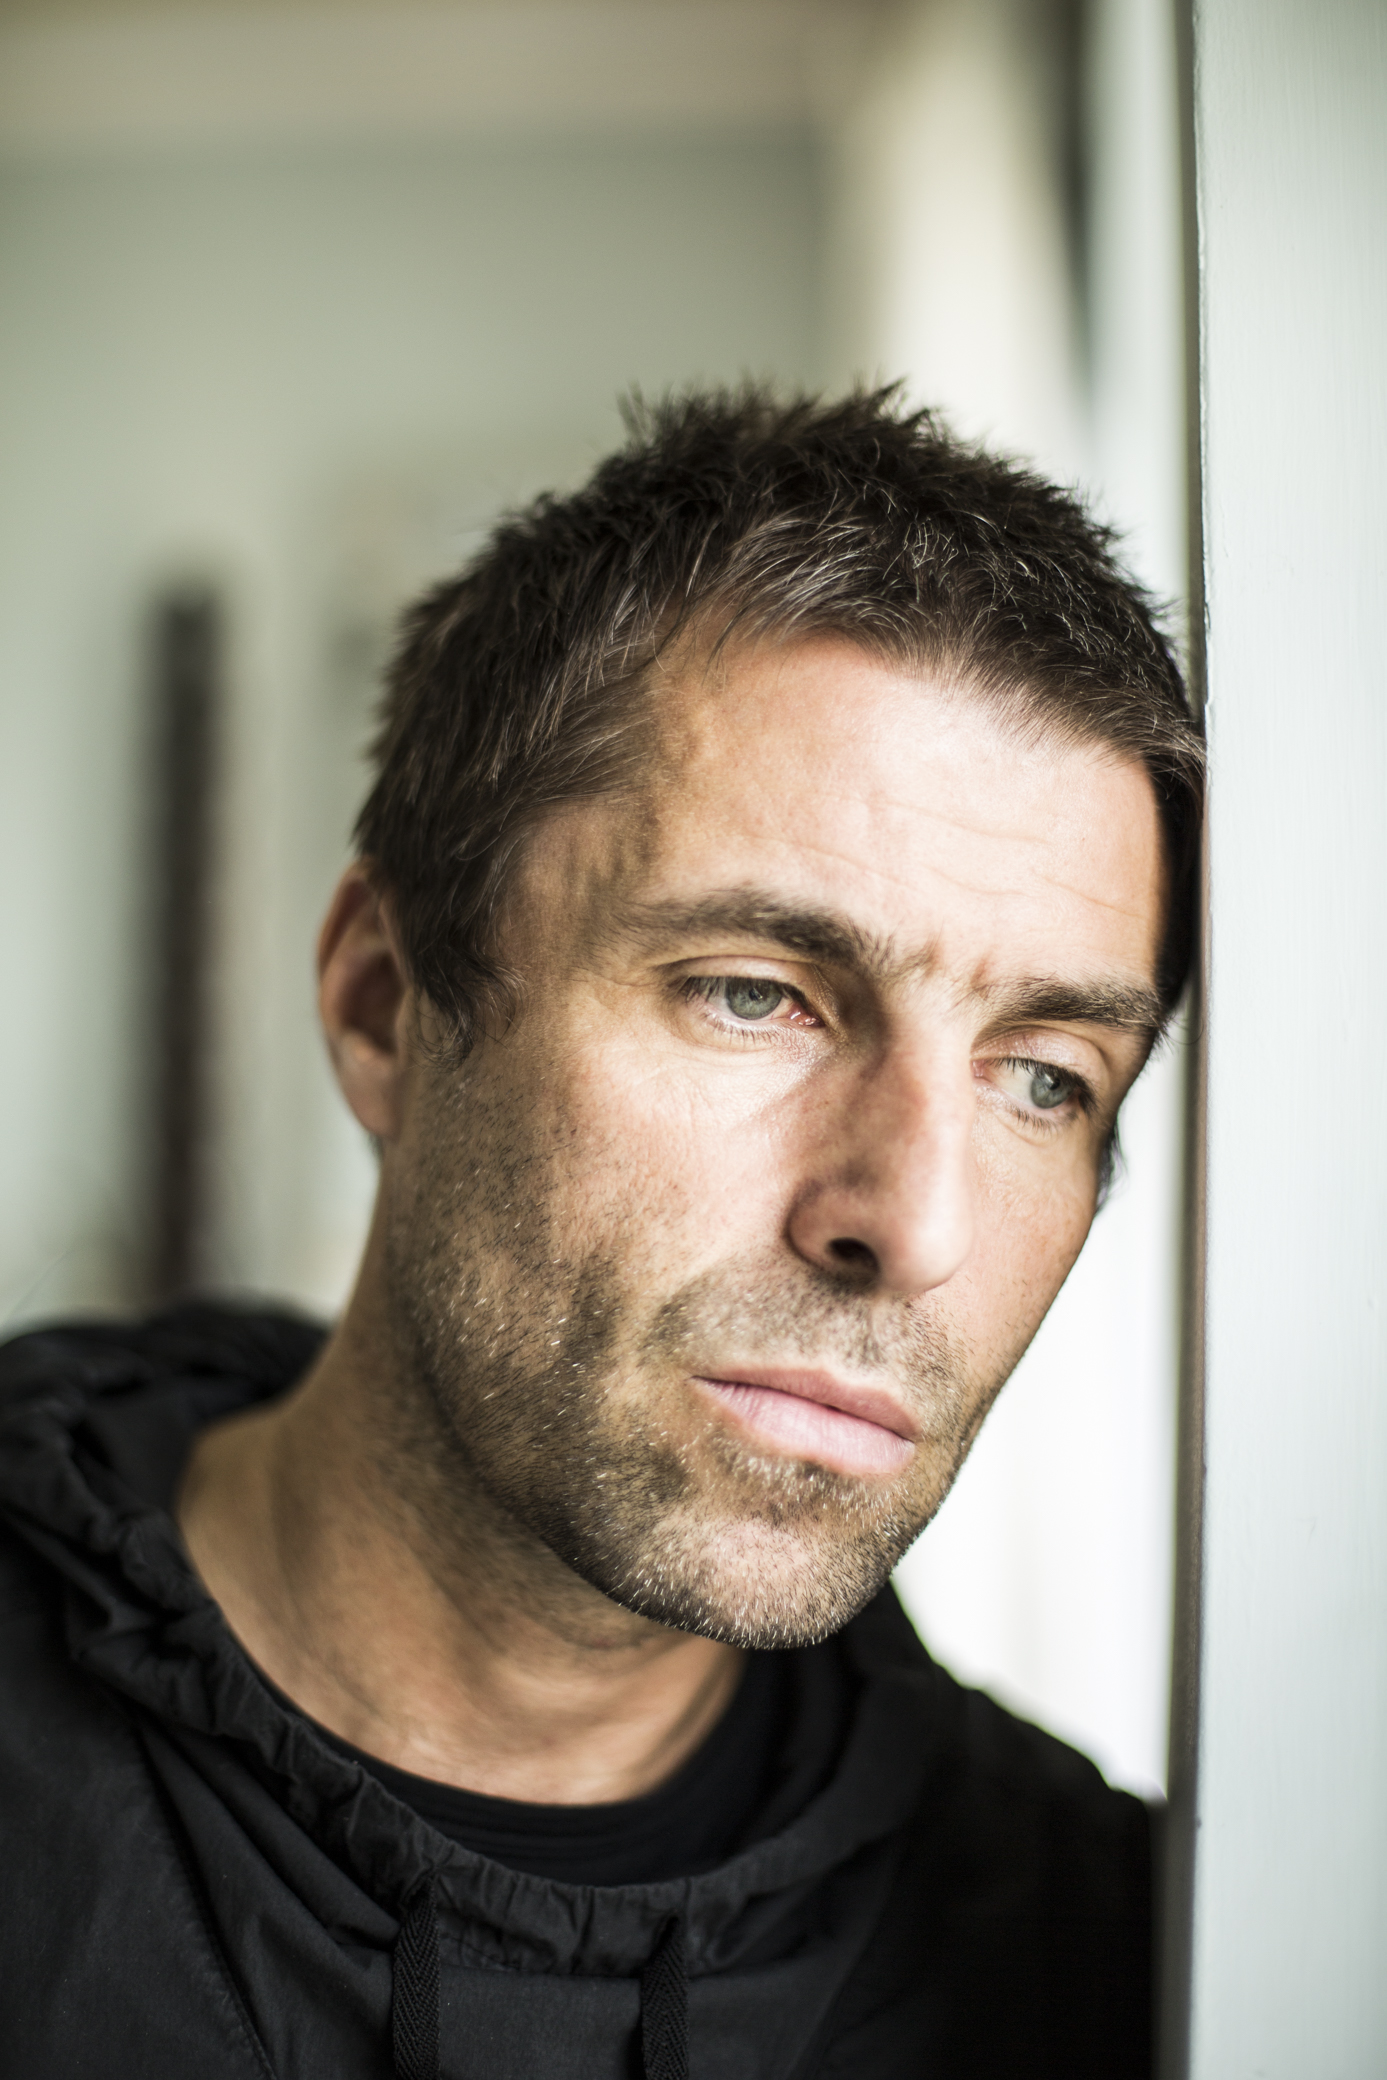 liam gallagher 31 Rock N Roll Star: A Conversation with Liam Gallagher